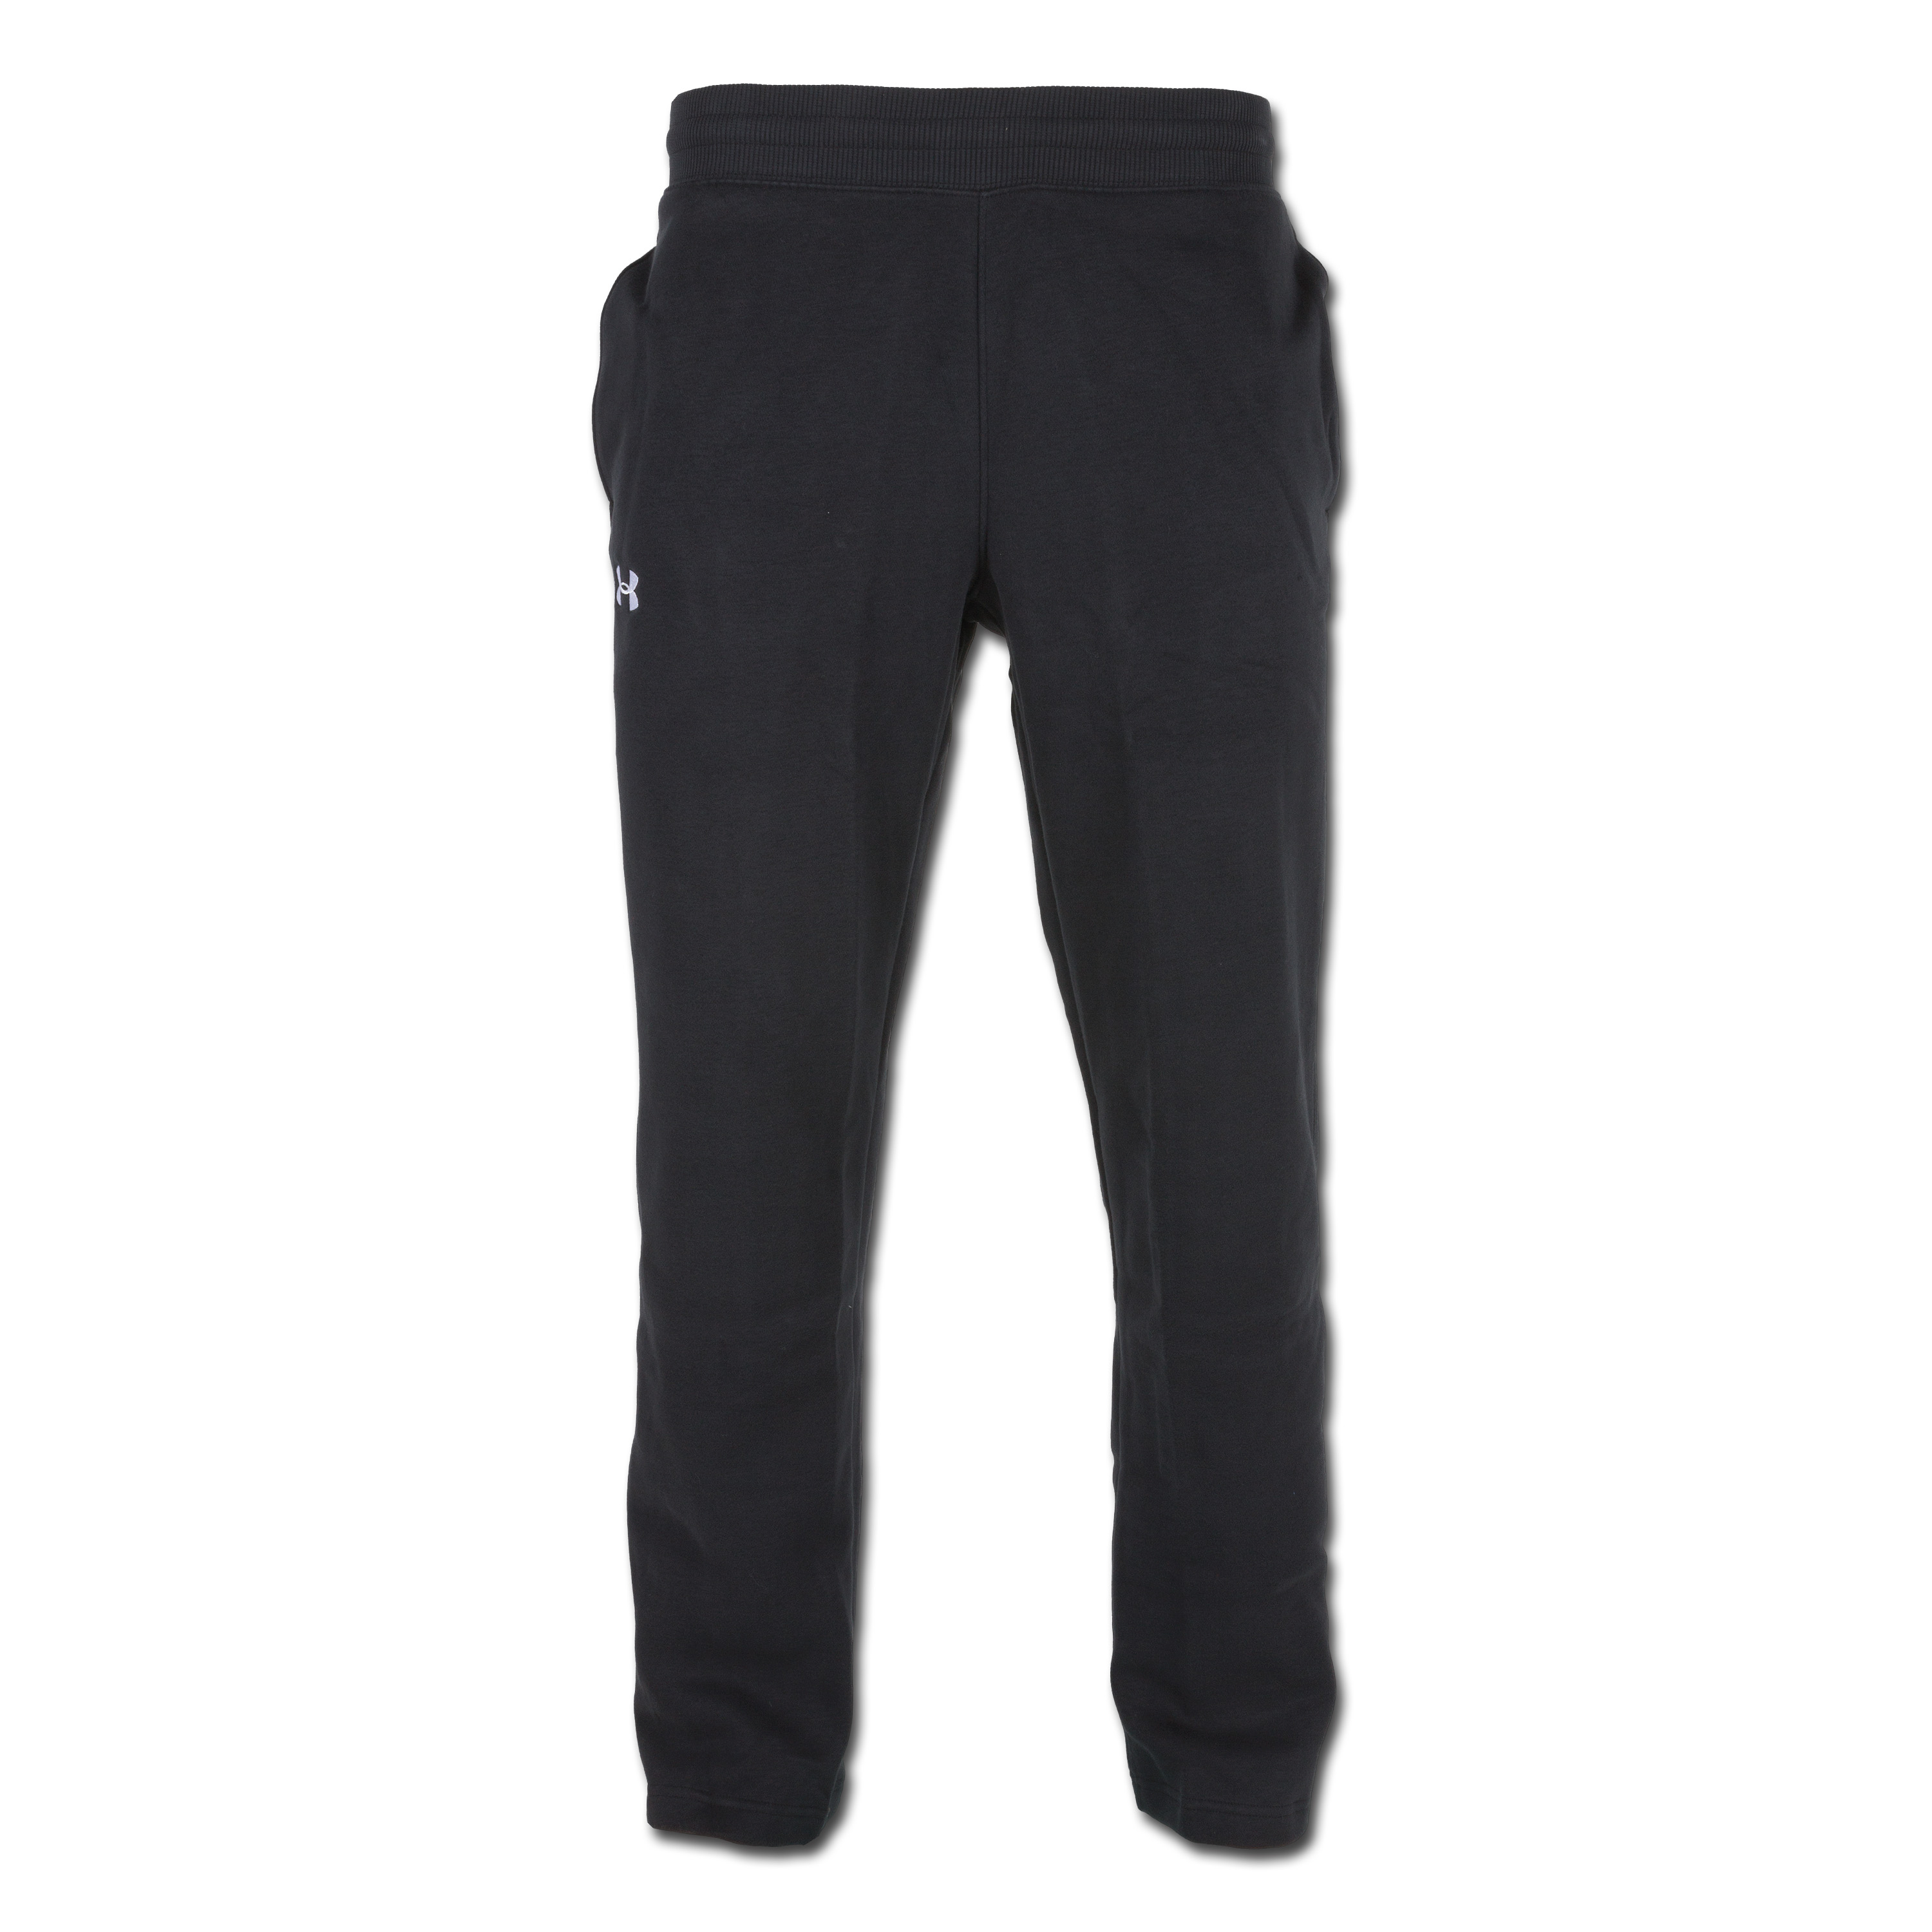 Under Armour Storm Charged Cotton Rival Pants black